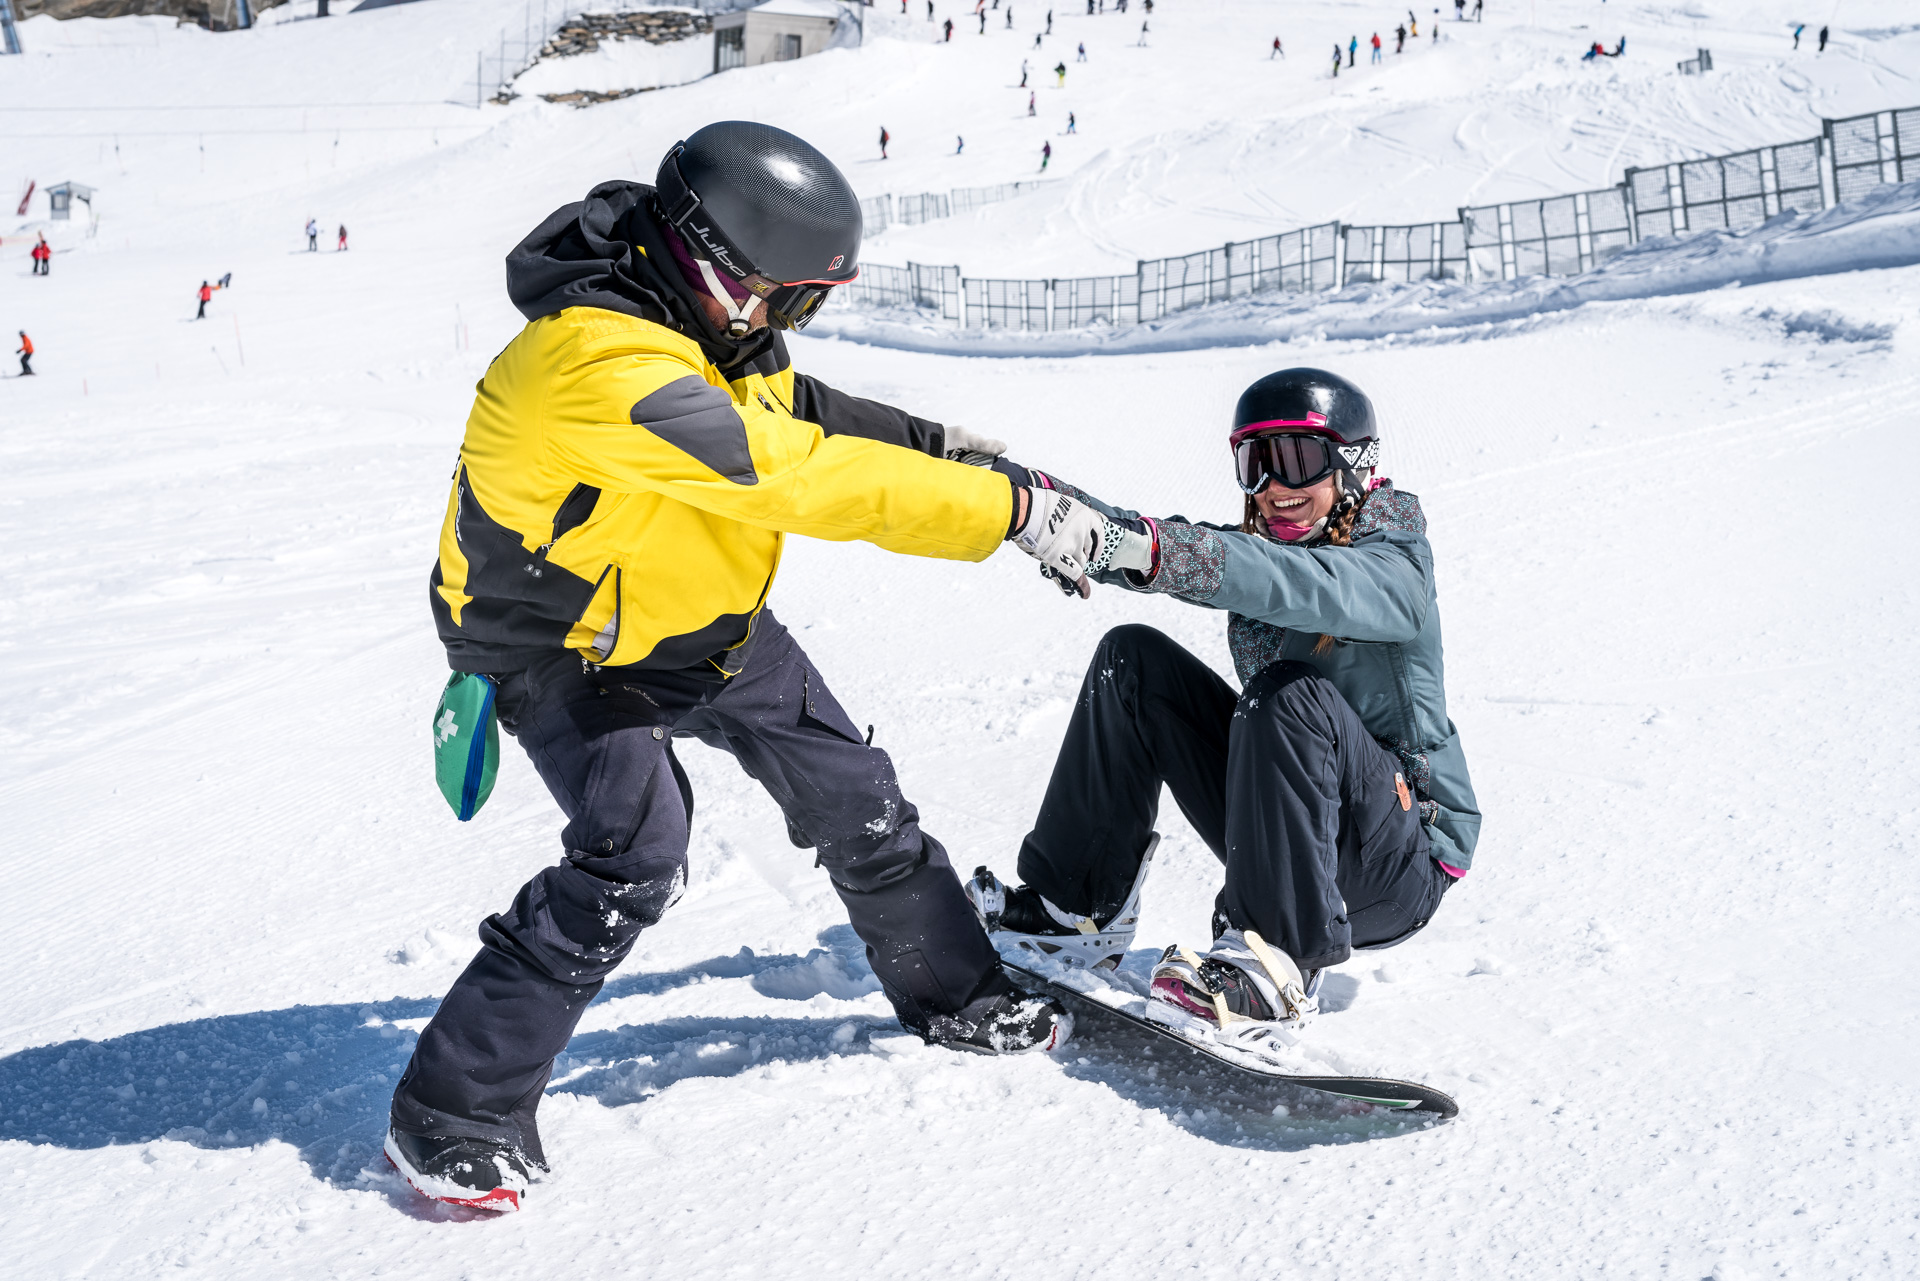 All in One Snowboard - Erwachsen/Adult, 4-5 Tage/Days Kurs/Course & 7 Tage/Days Rent